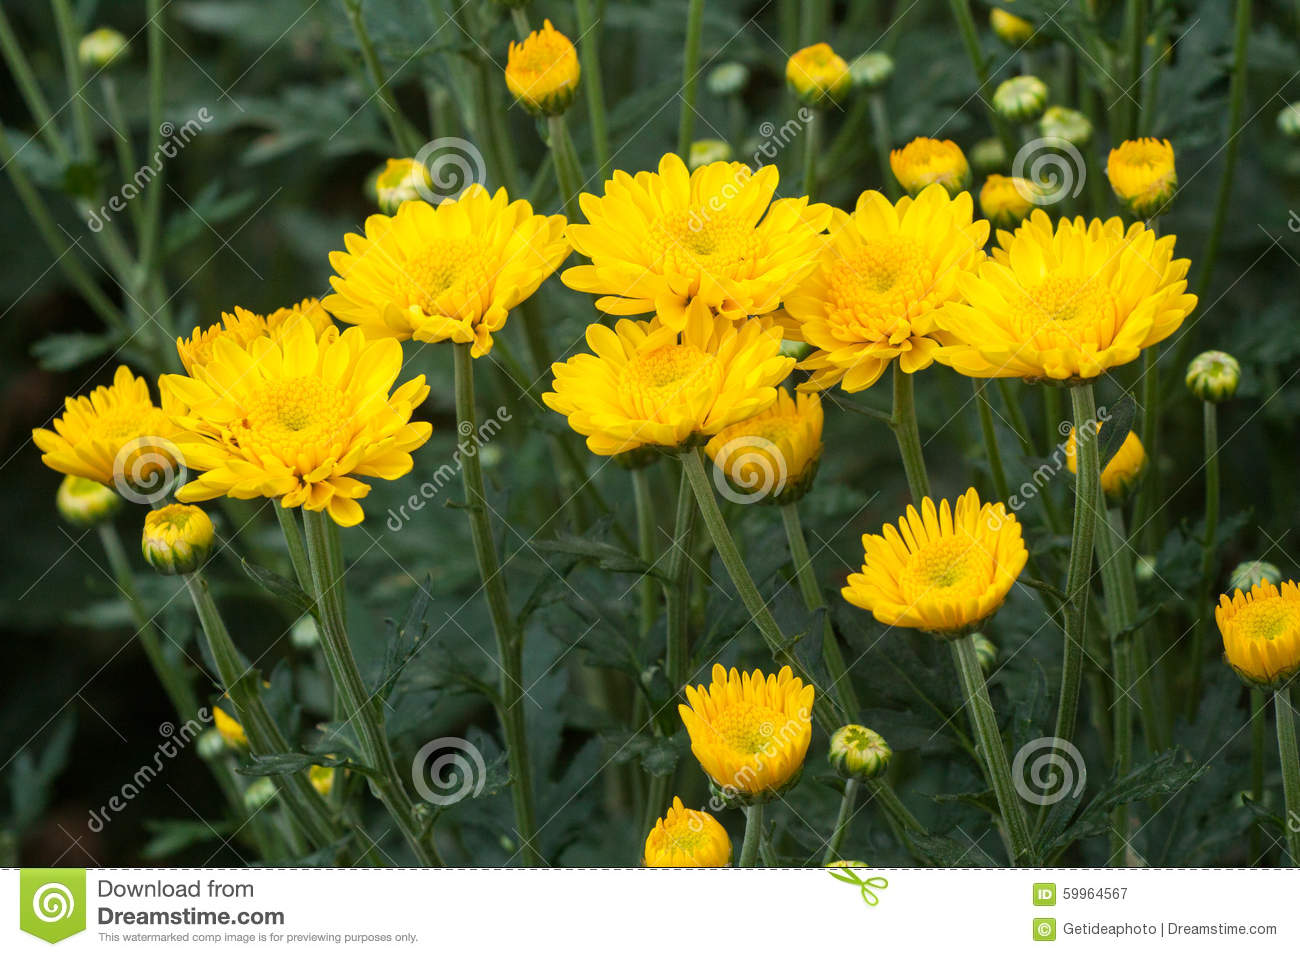 Yellow flowers names and pictures pictures of yellow flowers and their names impremedia mightylinksfo